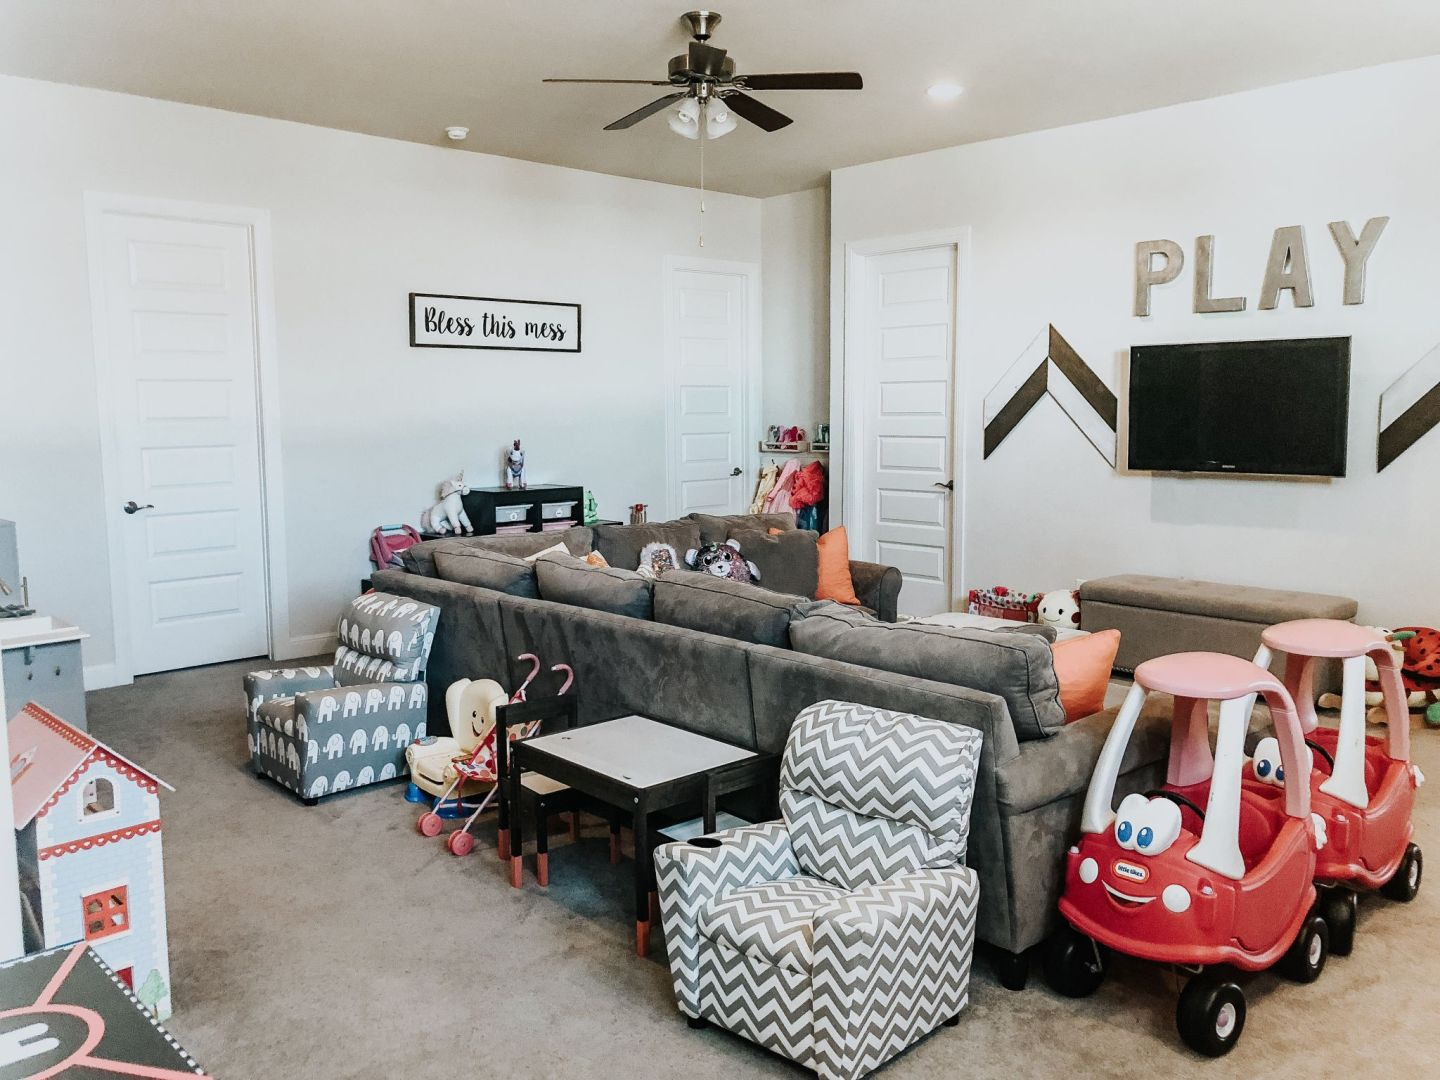 playroom organization tips, game room organization tips play room decor